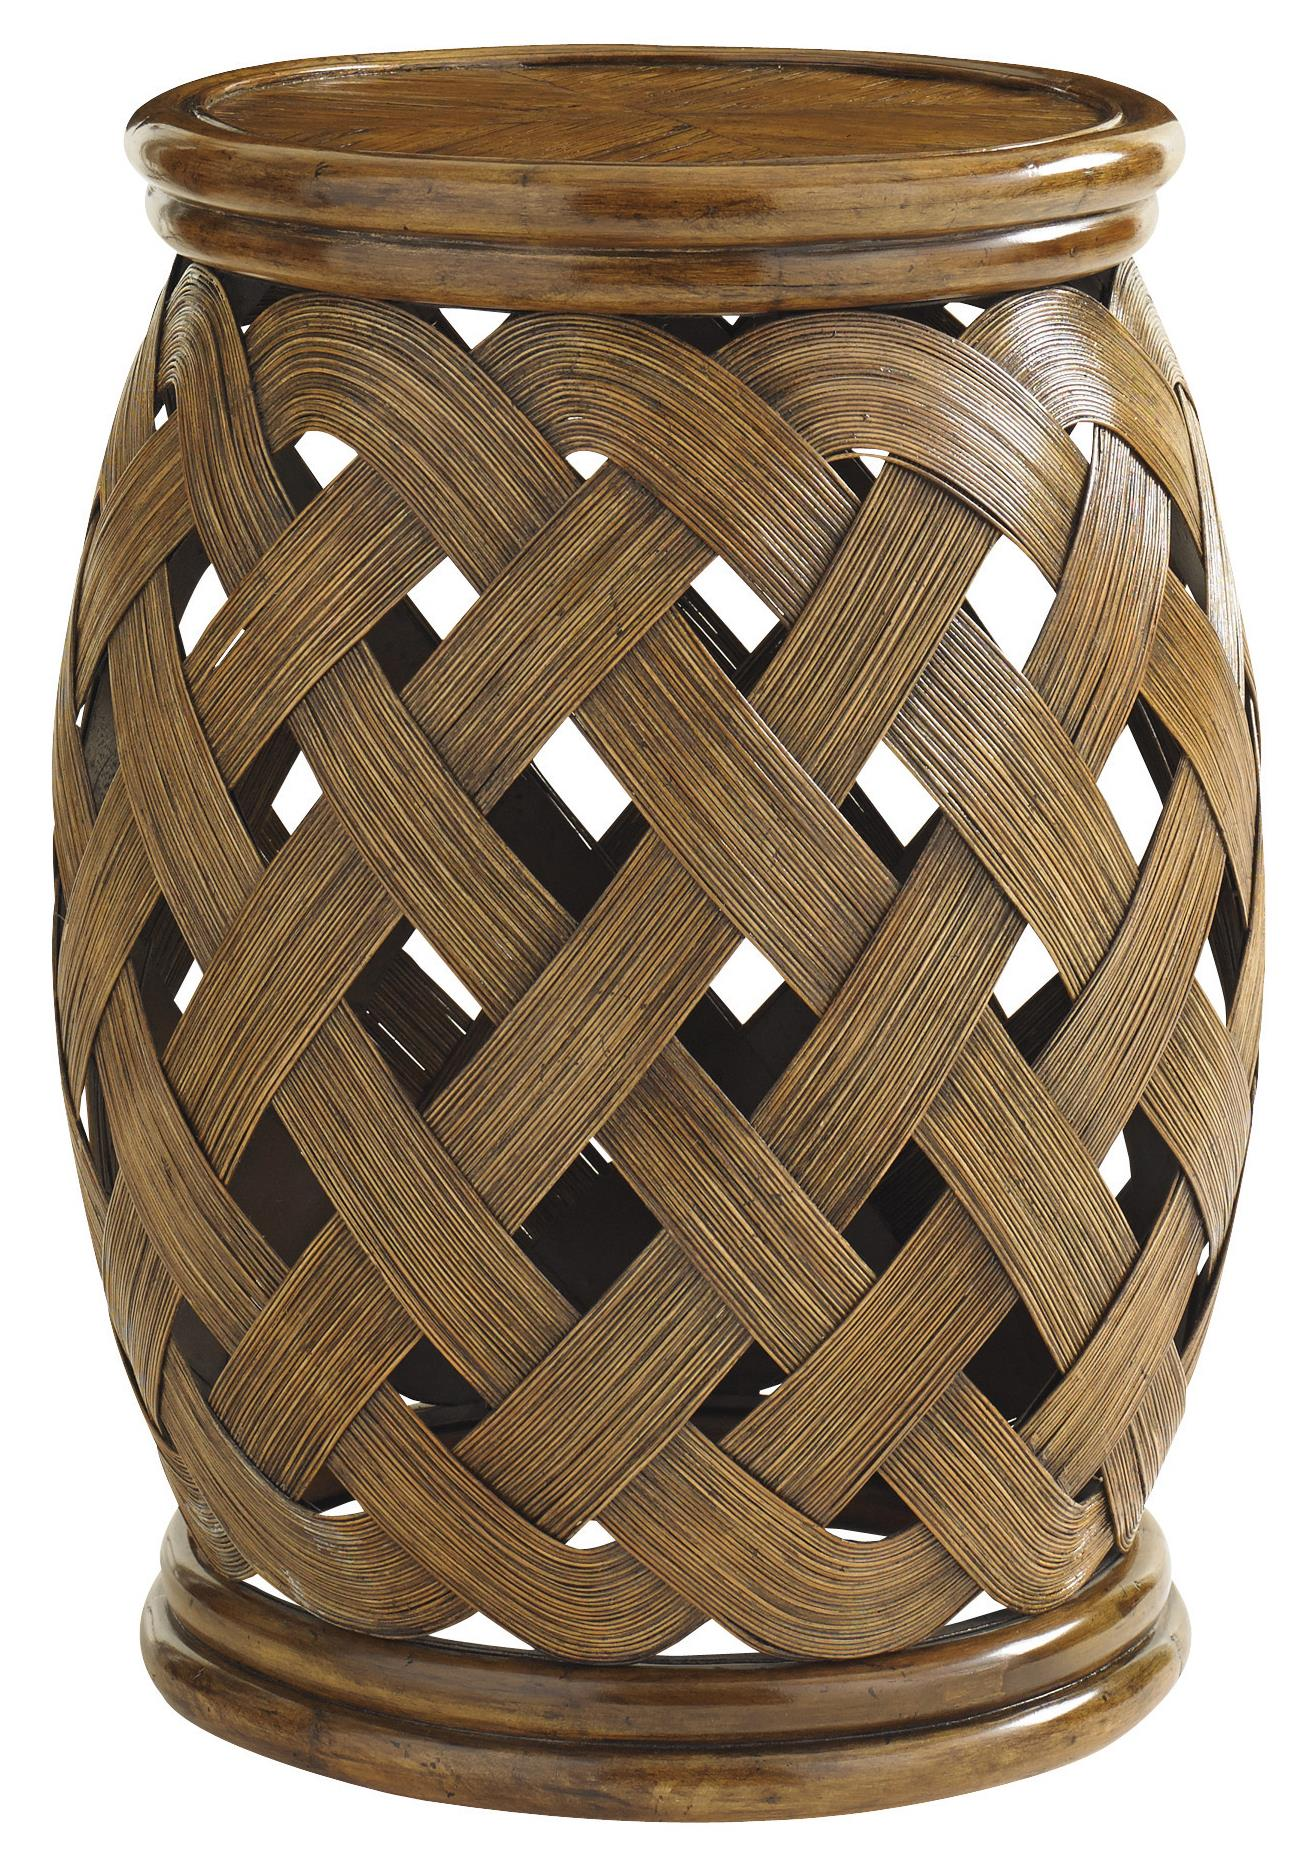 Bali Hai Hibiscus Round Accent Table by Tommy Bahama Home at Baer's Furniture